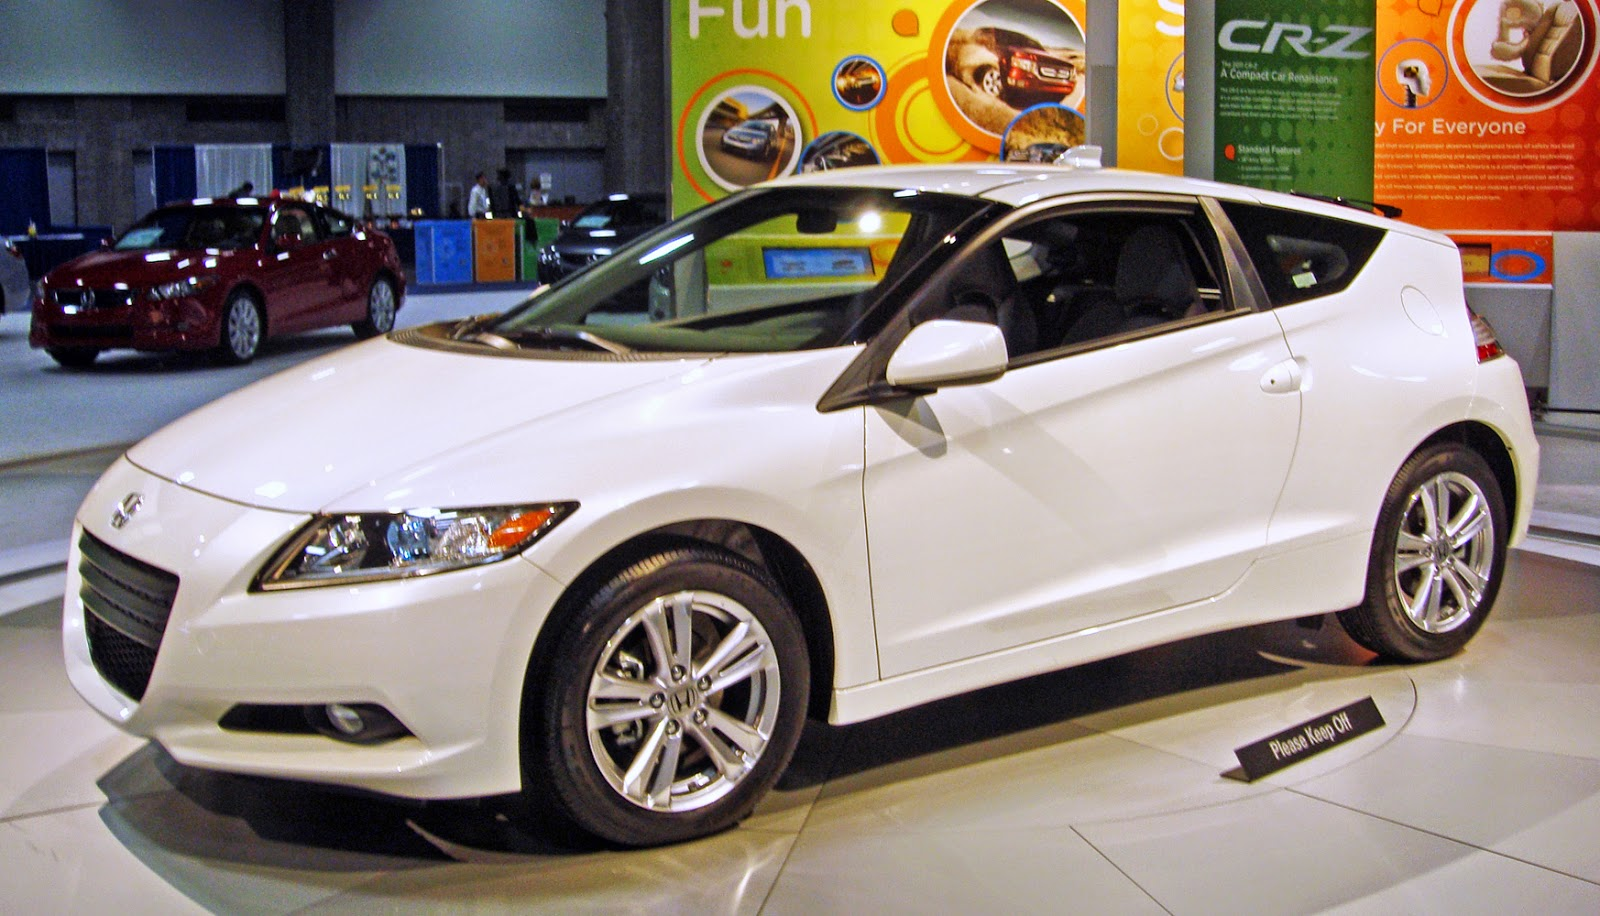 Honda CRZ, latest sport car honda